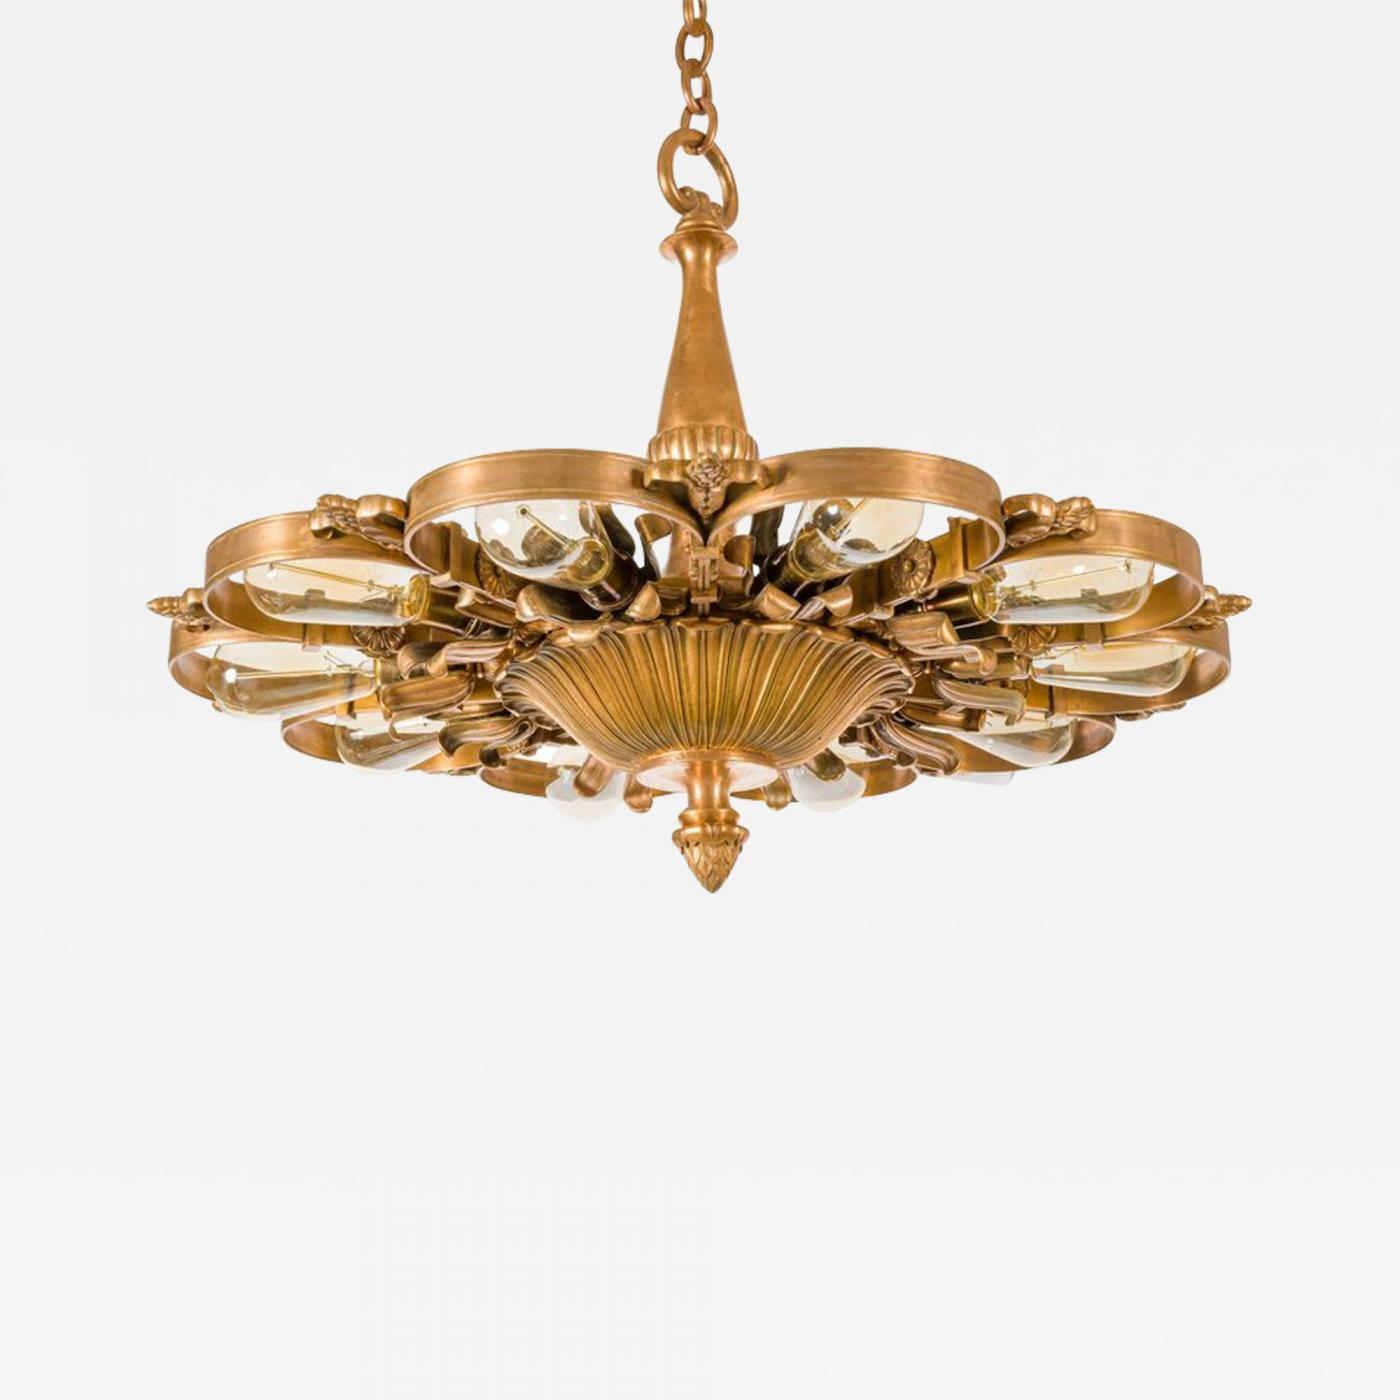 Neoclassical lighting Ceiling E F Caldwell Bronze Neoclassical Chandeliers Usa 1920s Incollect Edward Caldwell Co Caldwell Lighting E F Caldwell Bronze